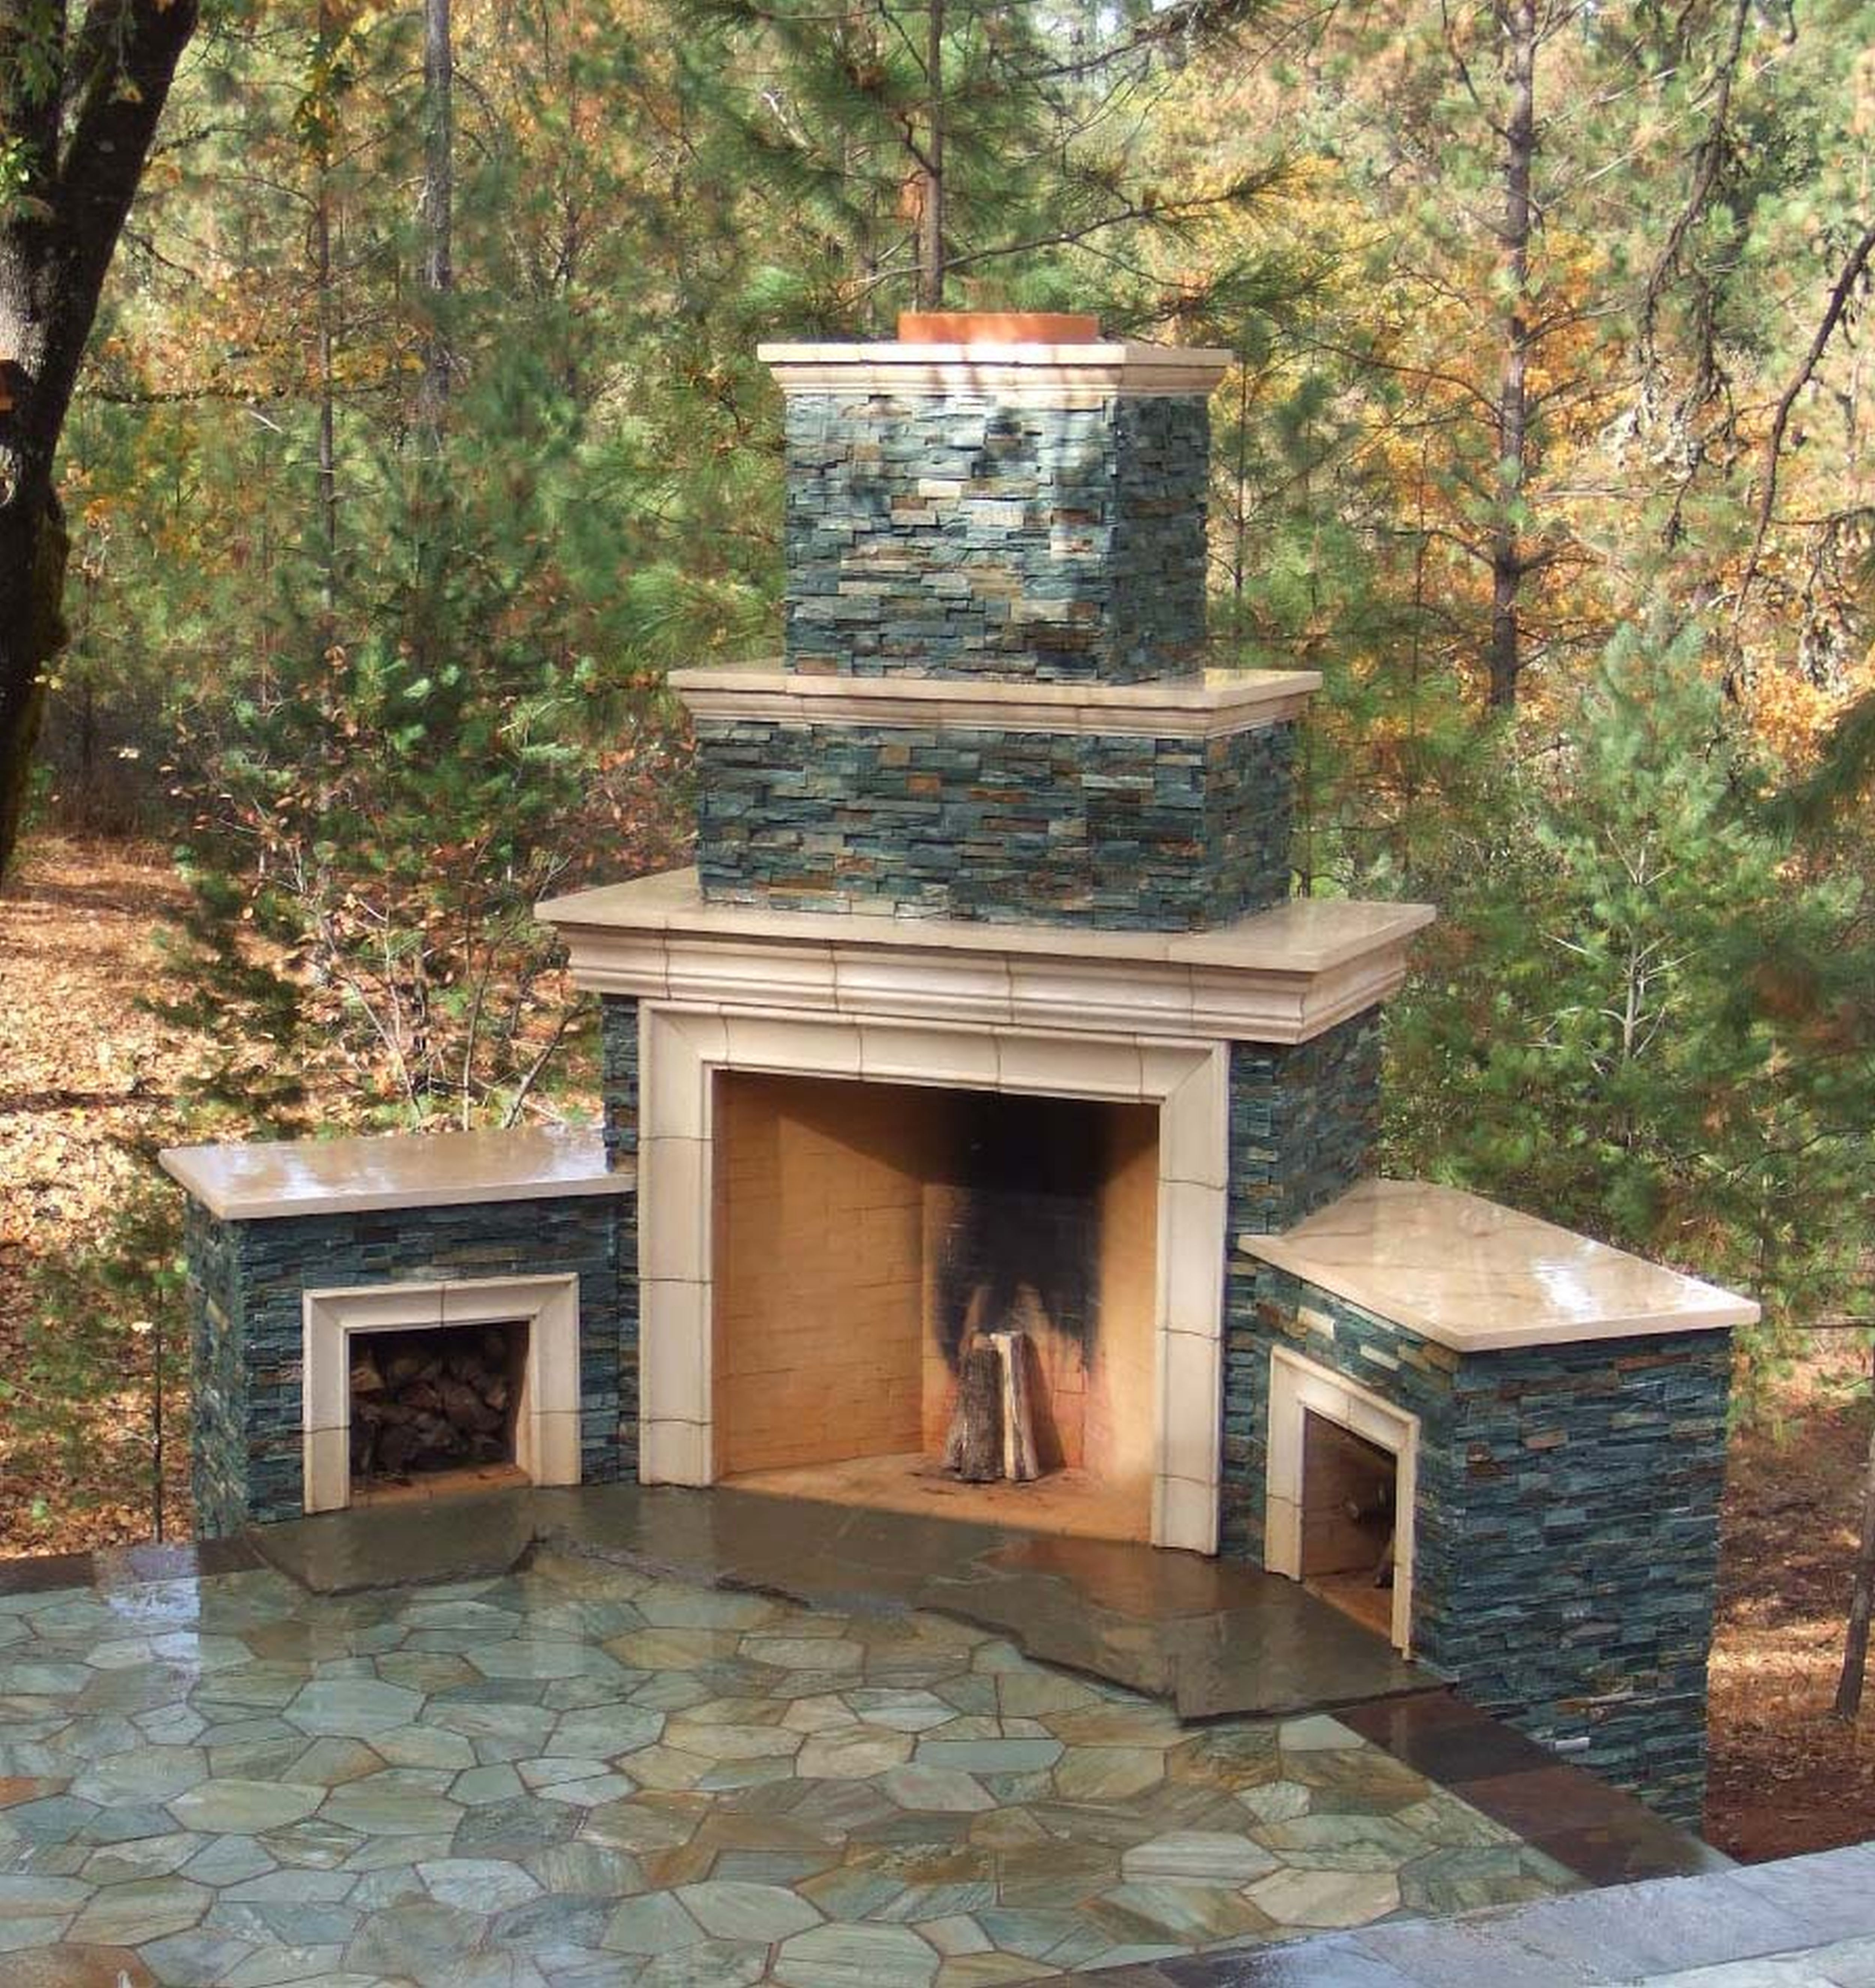 Glowing Outdoor Fireplace Ideas: Excellent Outdoor Fireplace Pictures Design Inspirations